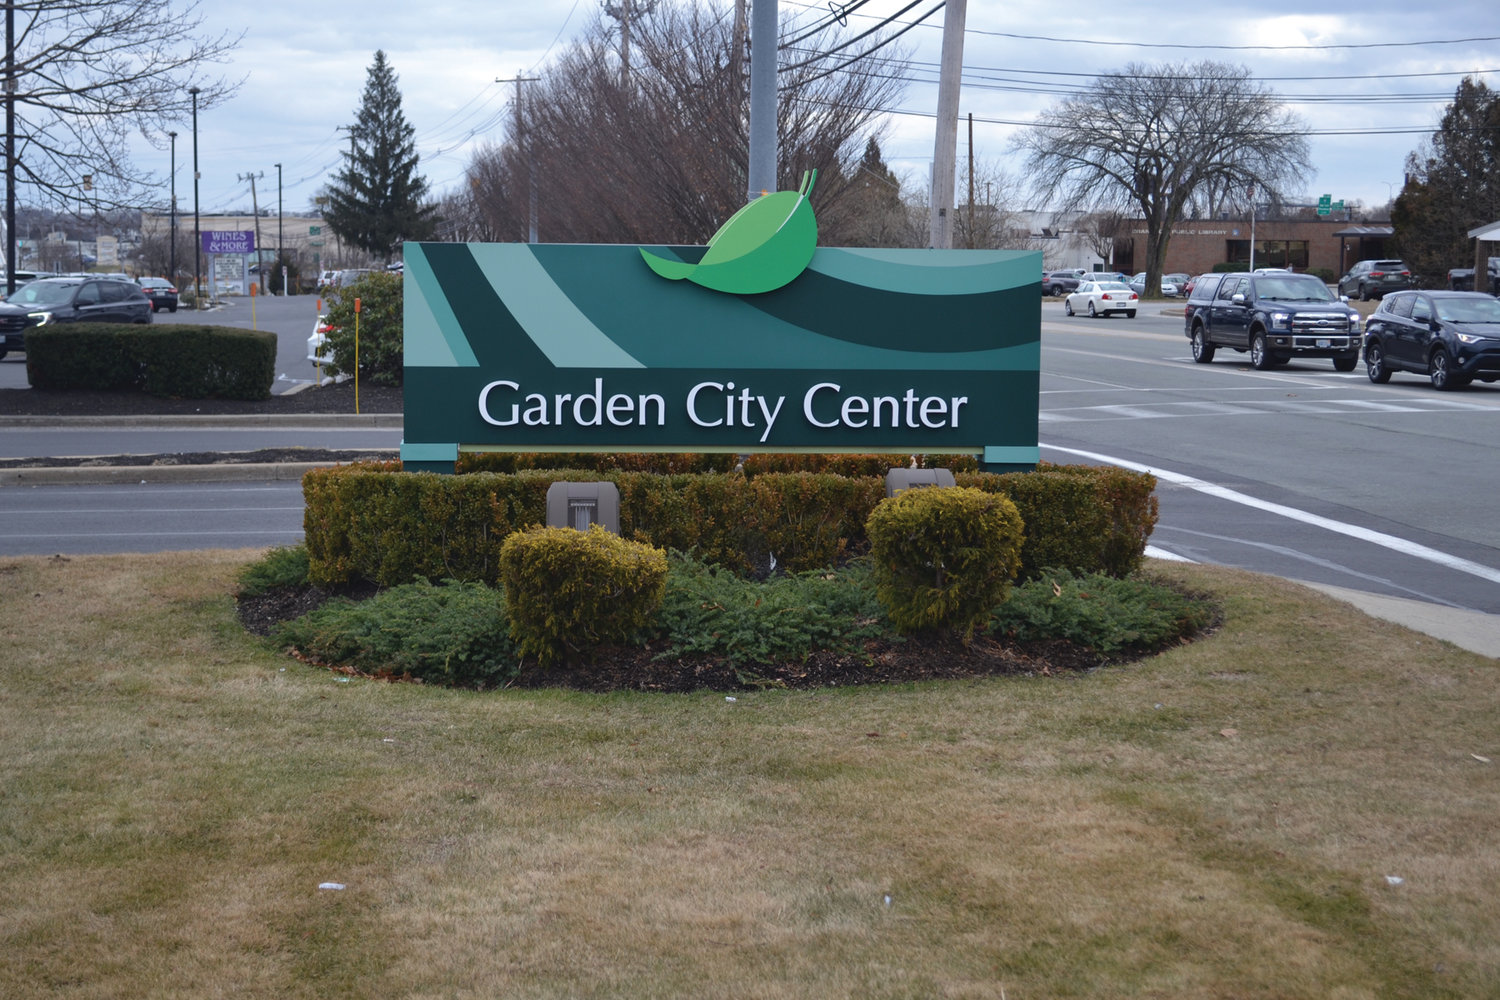 NEW CHAPTER: Garden City Center, which opened in 1948, has been acquired by a Massachusetts-based developer.